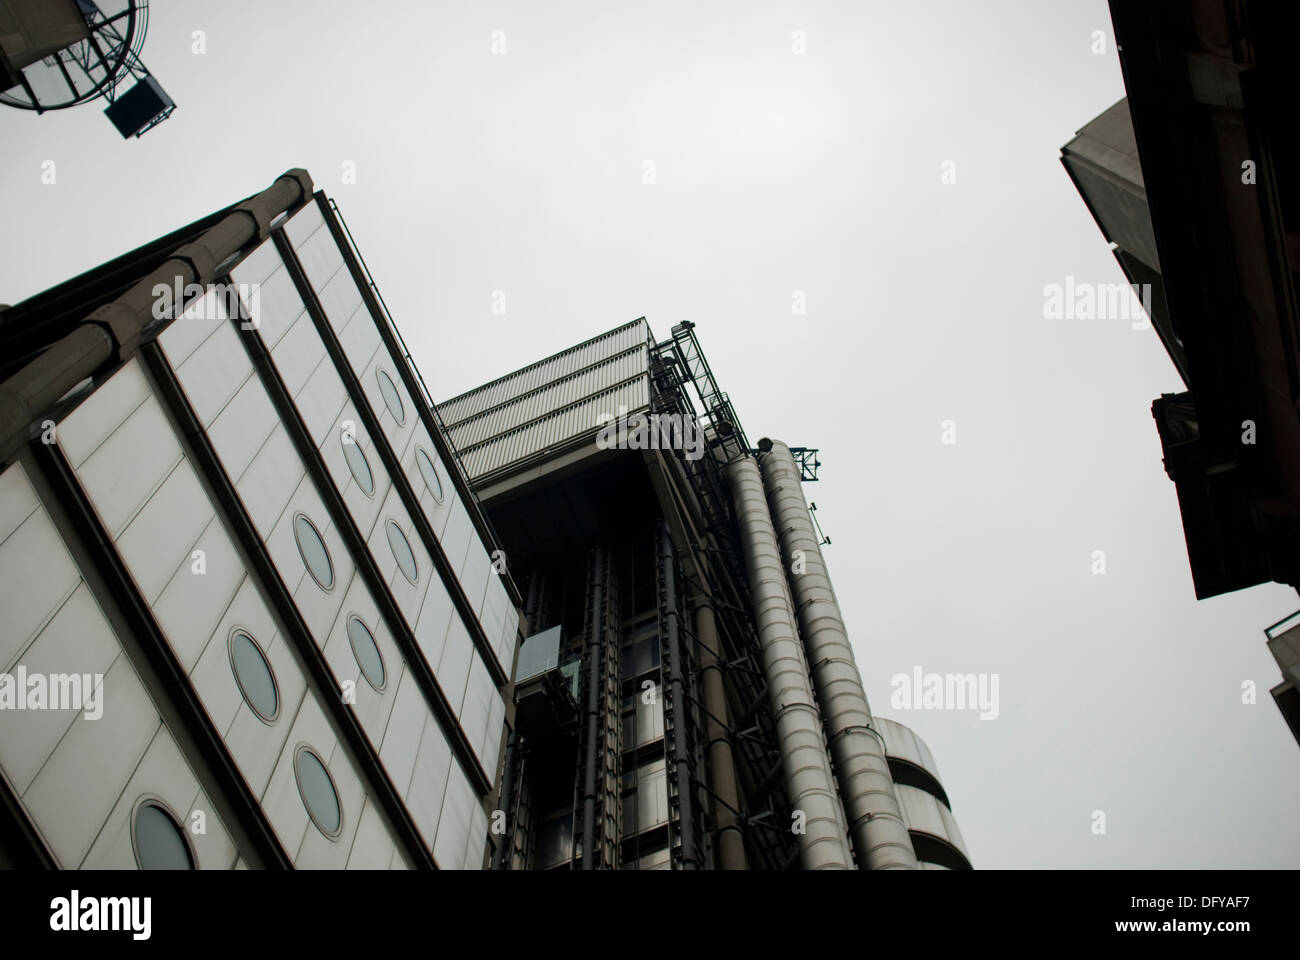 Lloyds Building London EC3 - Stock Image